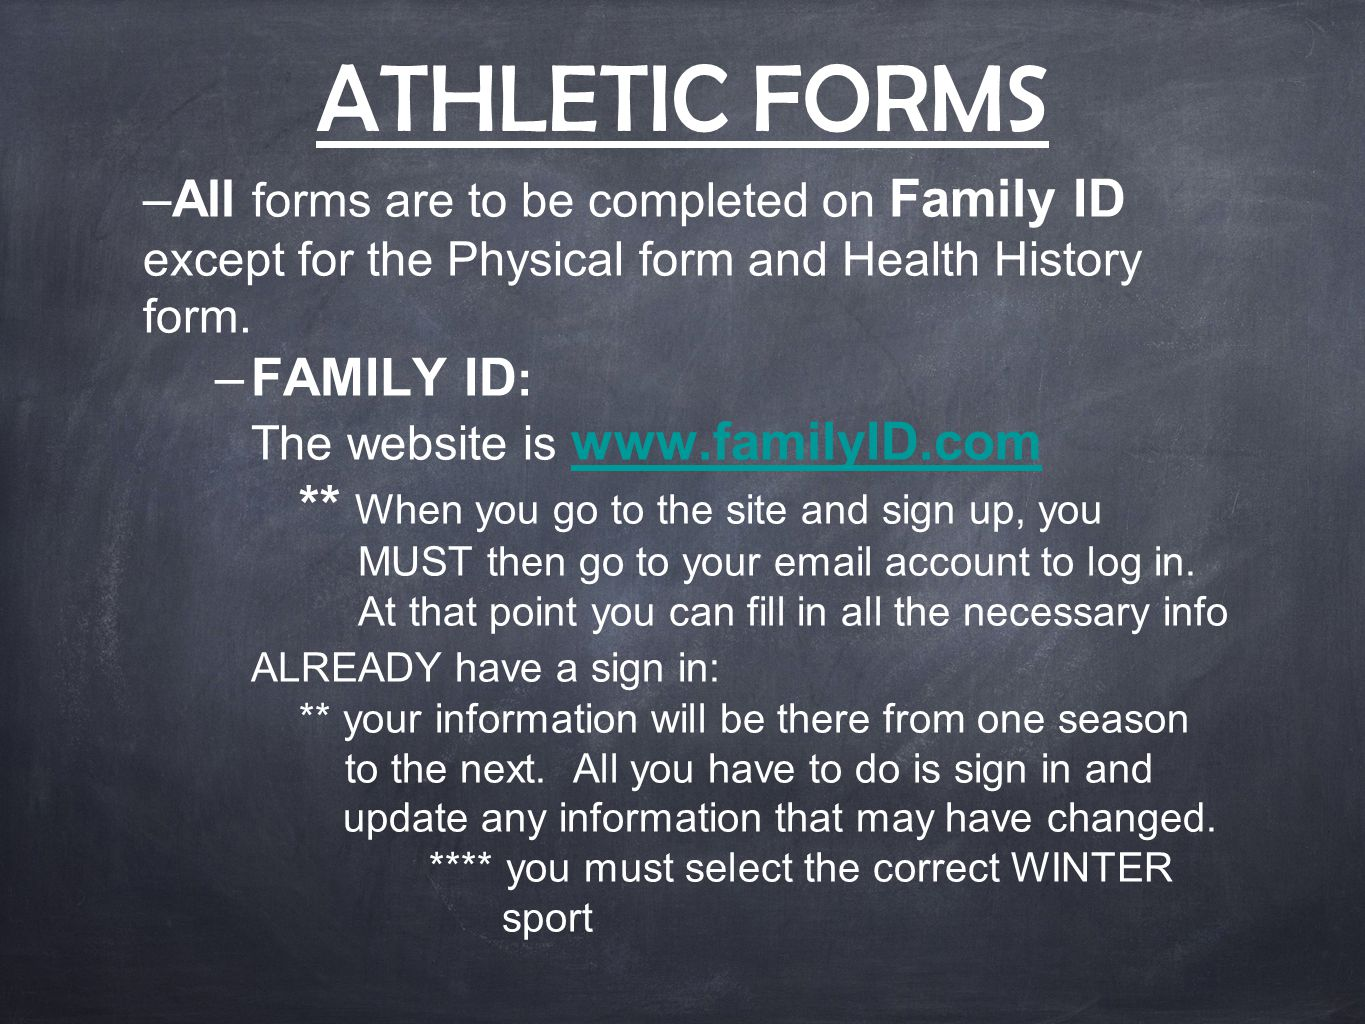 ATHLETIC FORMS –All forms are to be completed on Family ID except for the Physical form and Health History form.